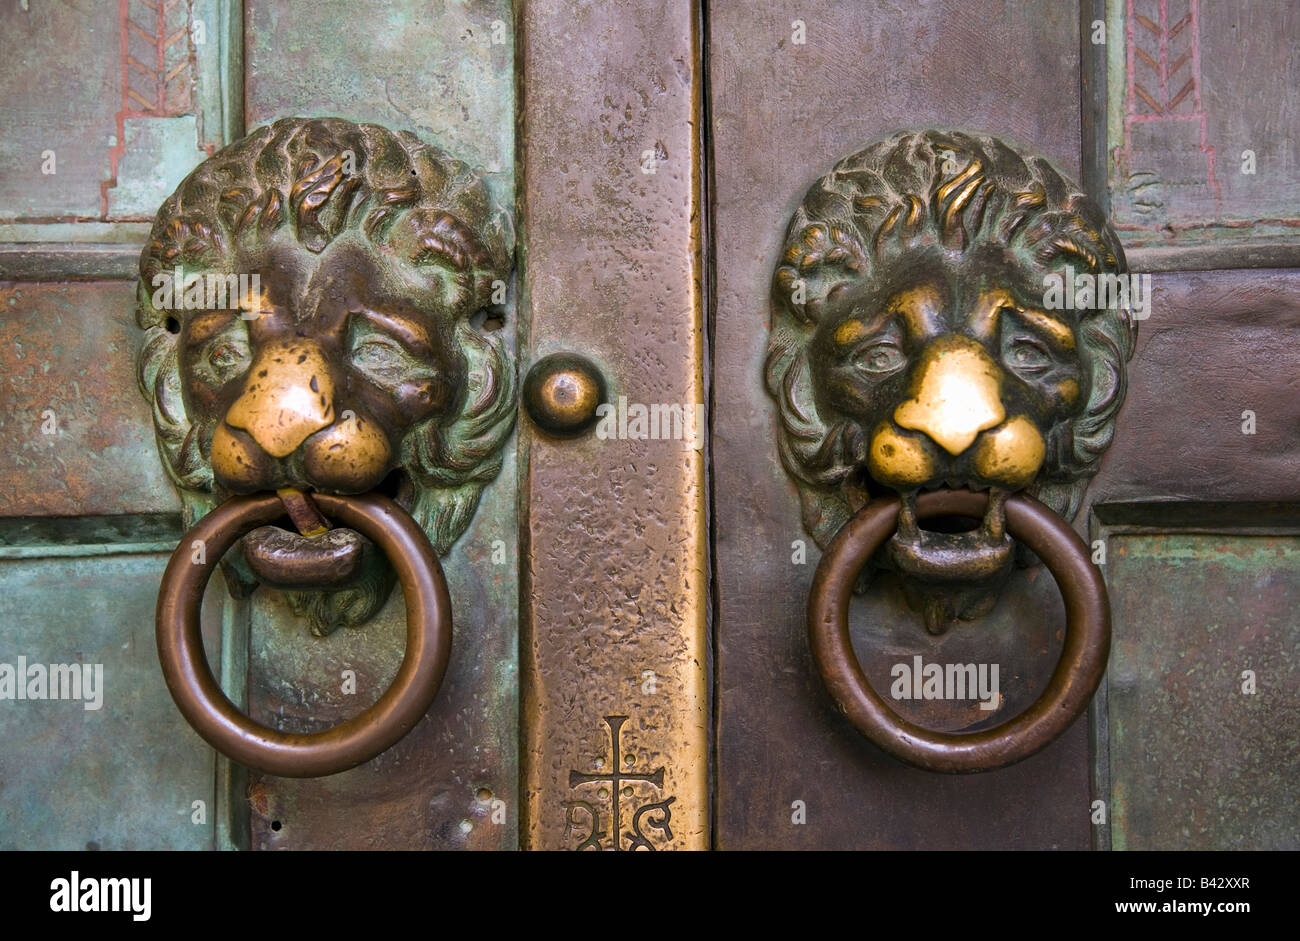 Where To Buy Door Knockers Sant 39andrea Church Door Knockers In Amalfi Italy Europe